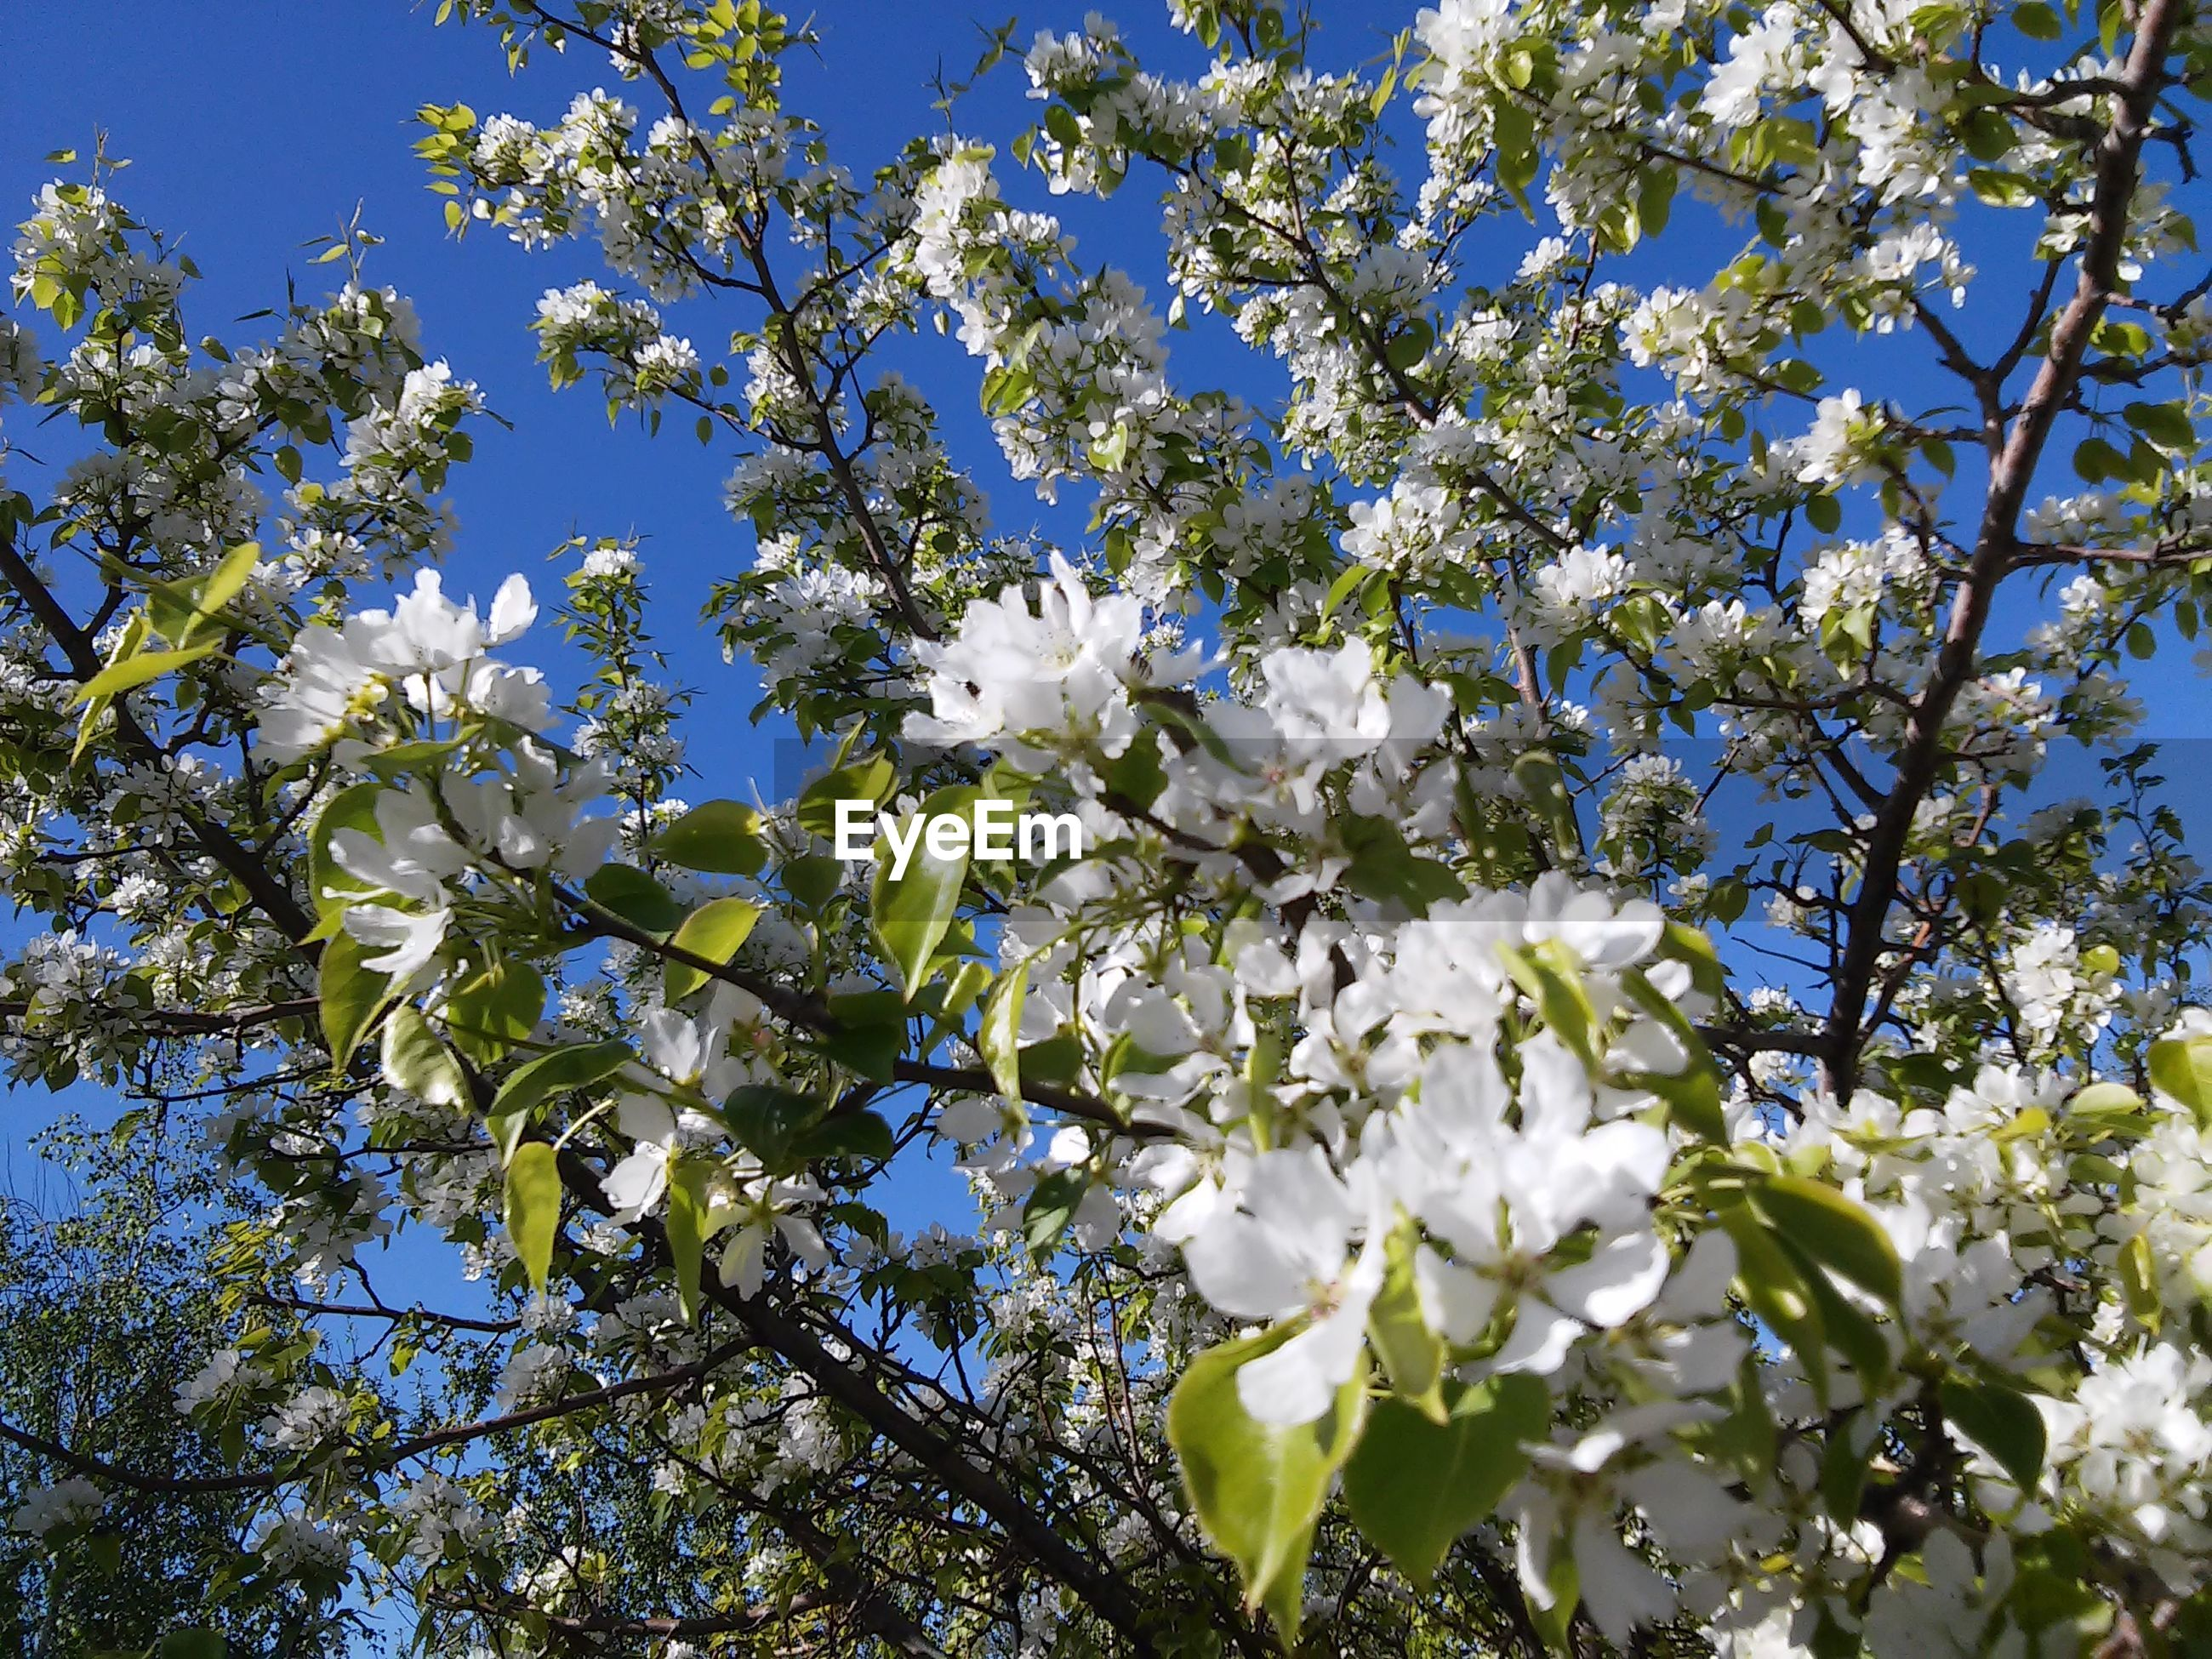 flower, blossom, fragility, tree, growth, white color, springtime, nature, apple blossom, beauty in nature, branch, apple tree, botany, freshness, orchard, no people, petal, low angle view, twig, spring, backgrounds, day, blooming, outdoors, close-up, flower head